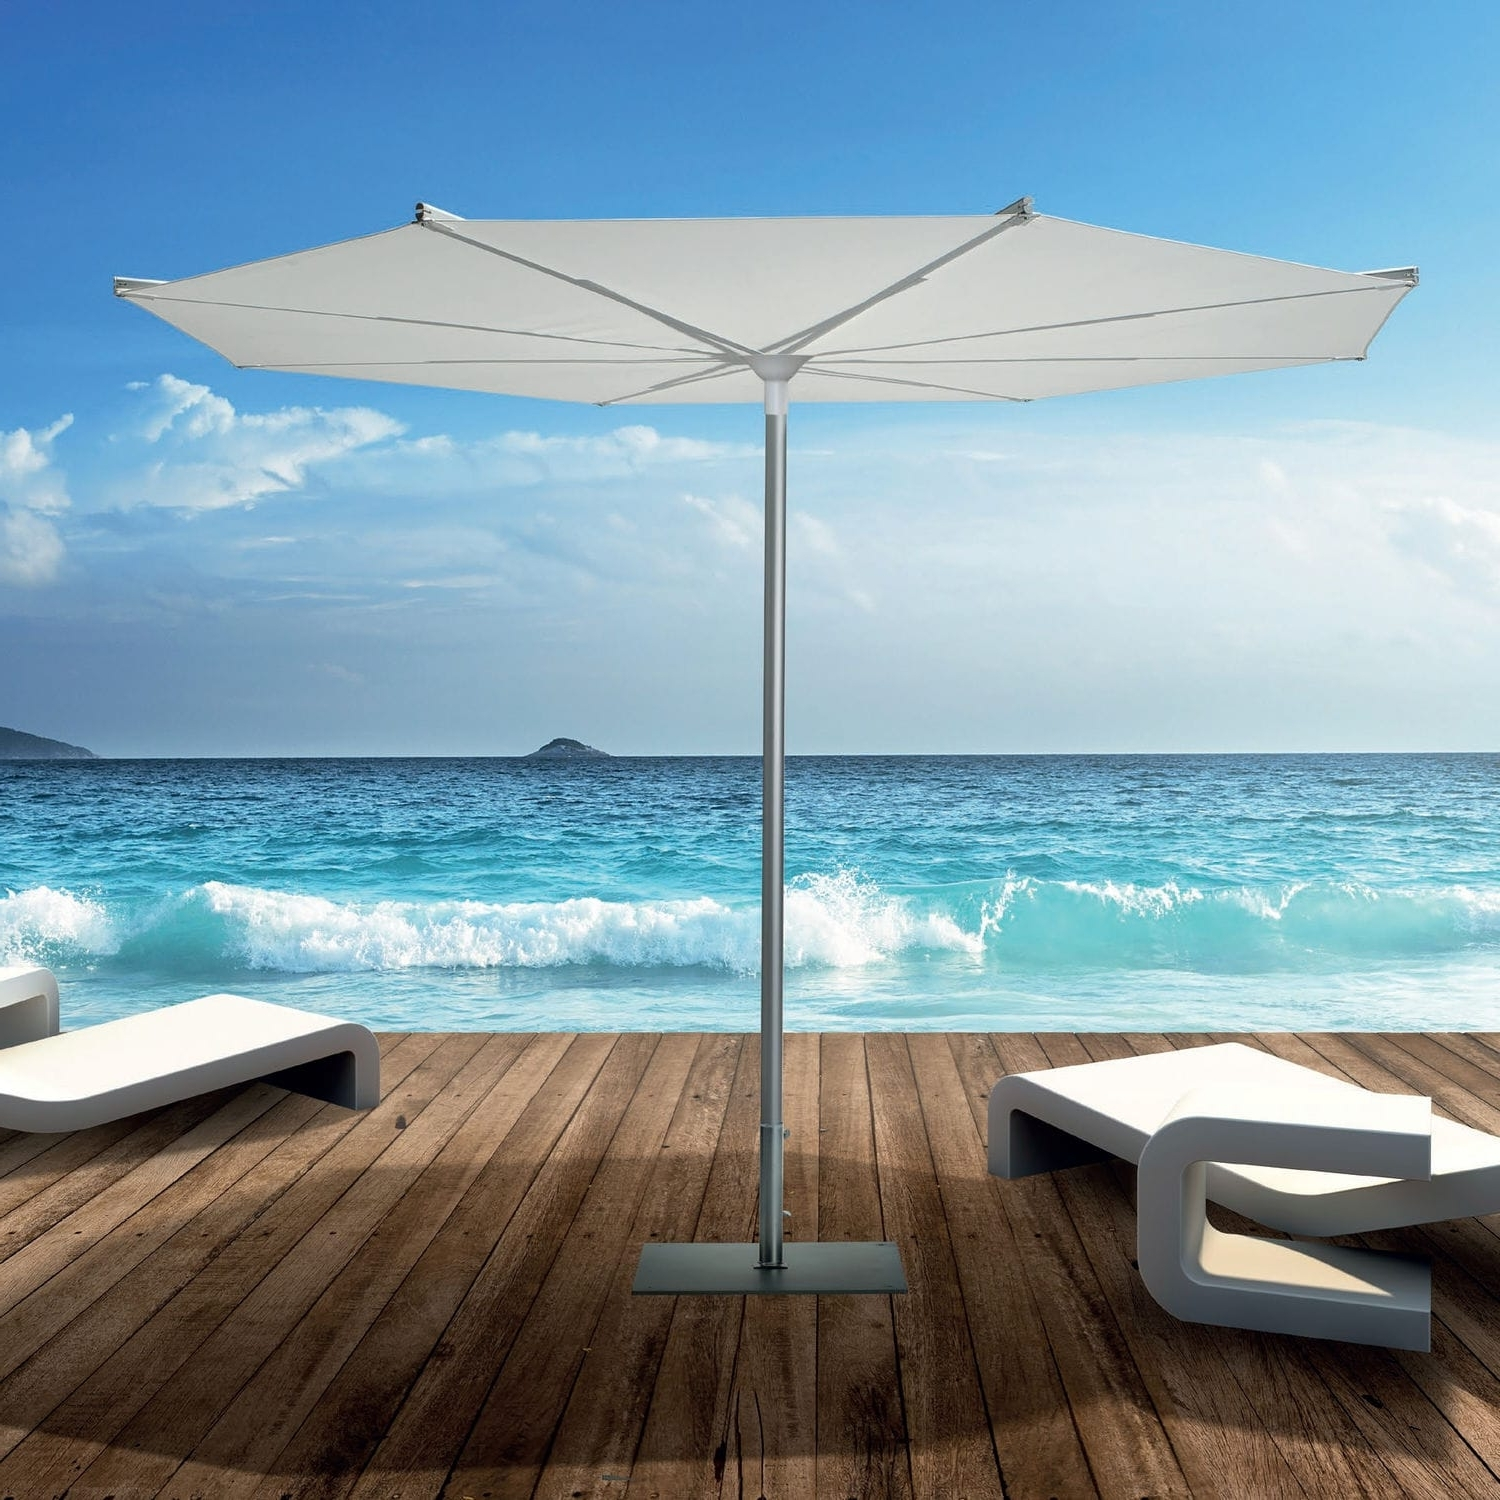 Patio Umbrellas For Windy Locations In Most Recent Commercial Patio Umbrella / For Hotels / Aluminum / Wind Resistant (View 11 of 20)